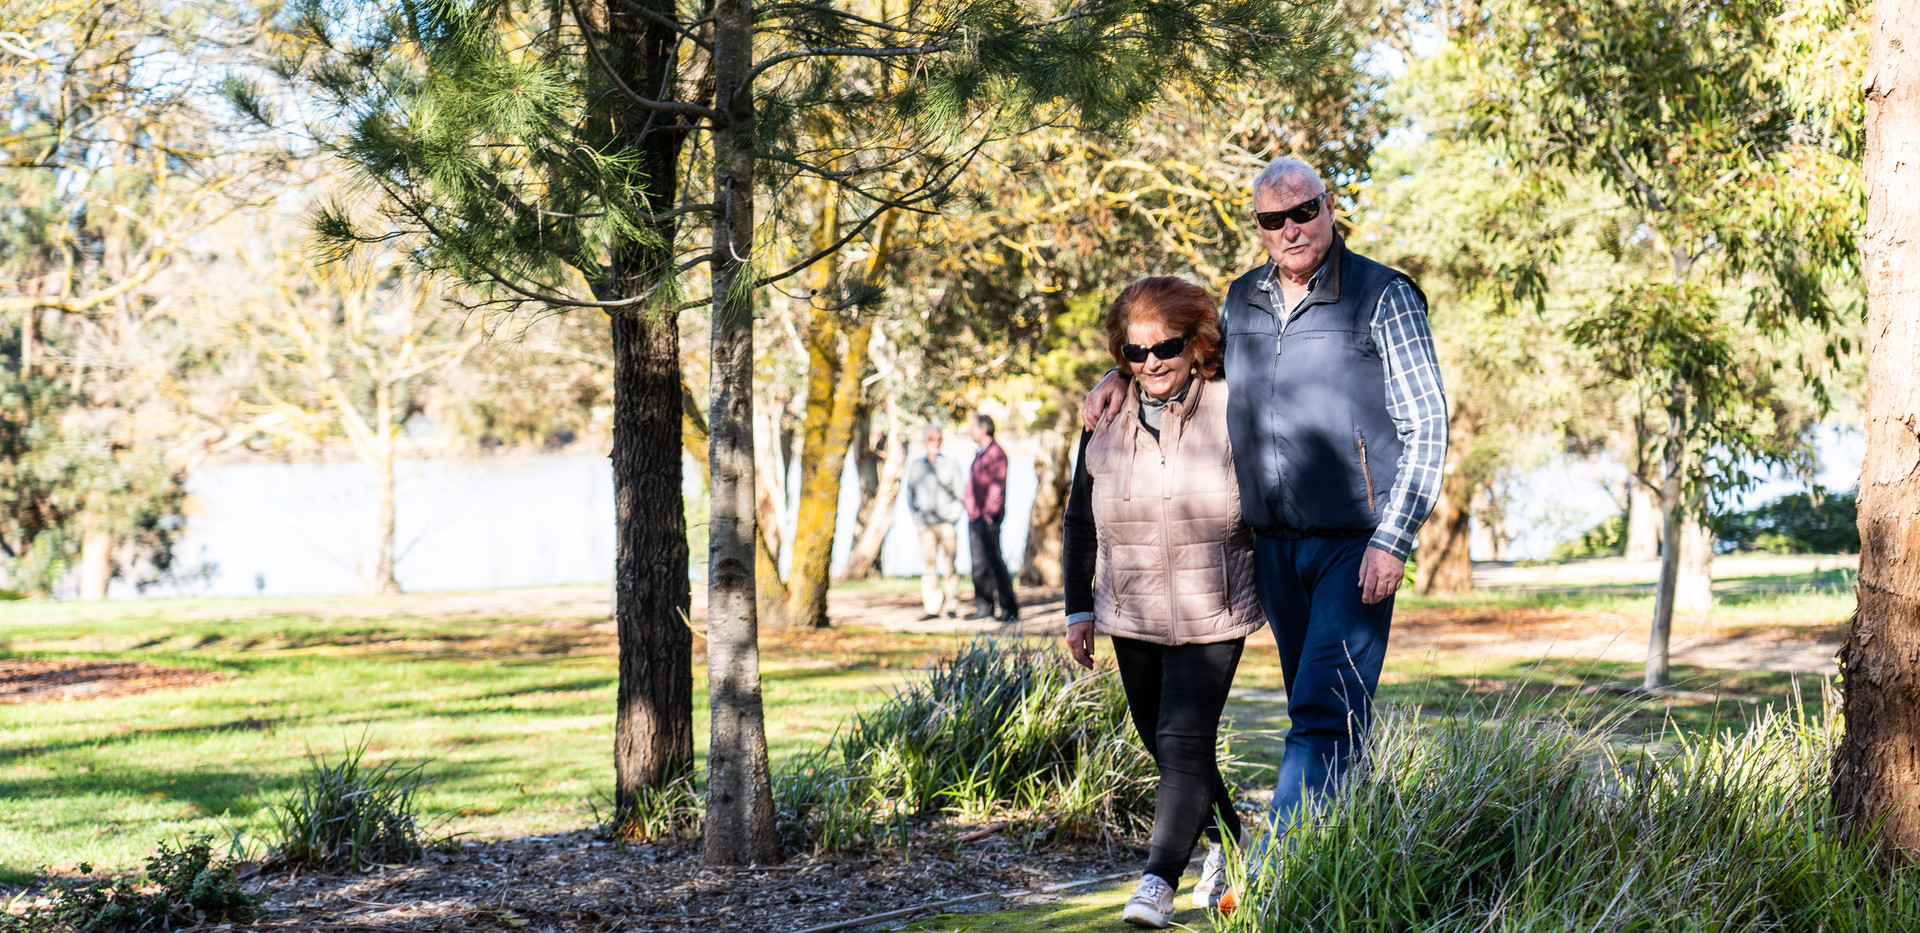 residents enjoying a walk in the picturesque surounds of La Dimora retirement village